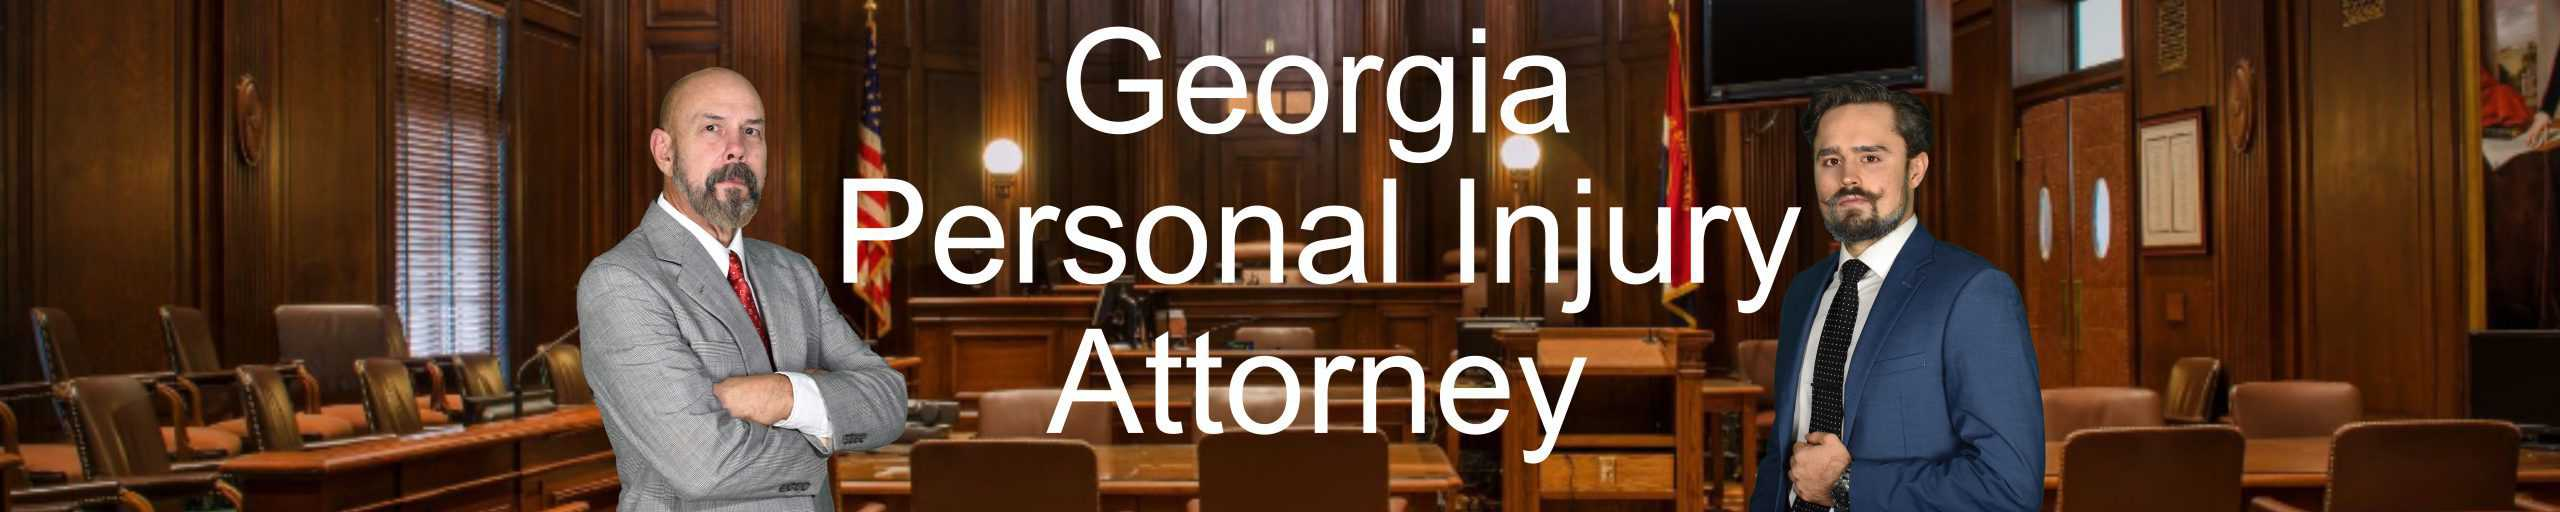 Georgia-Personal-Injury-Attorney-Lawyer-Settlement-Money-Fight-Insurance-Company-Hurt-Pain-Suffering-Car-Accident-DUI-Drunk-Driving-Rear-End-Slip-Fall-Court-Insurance